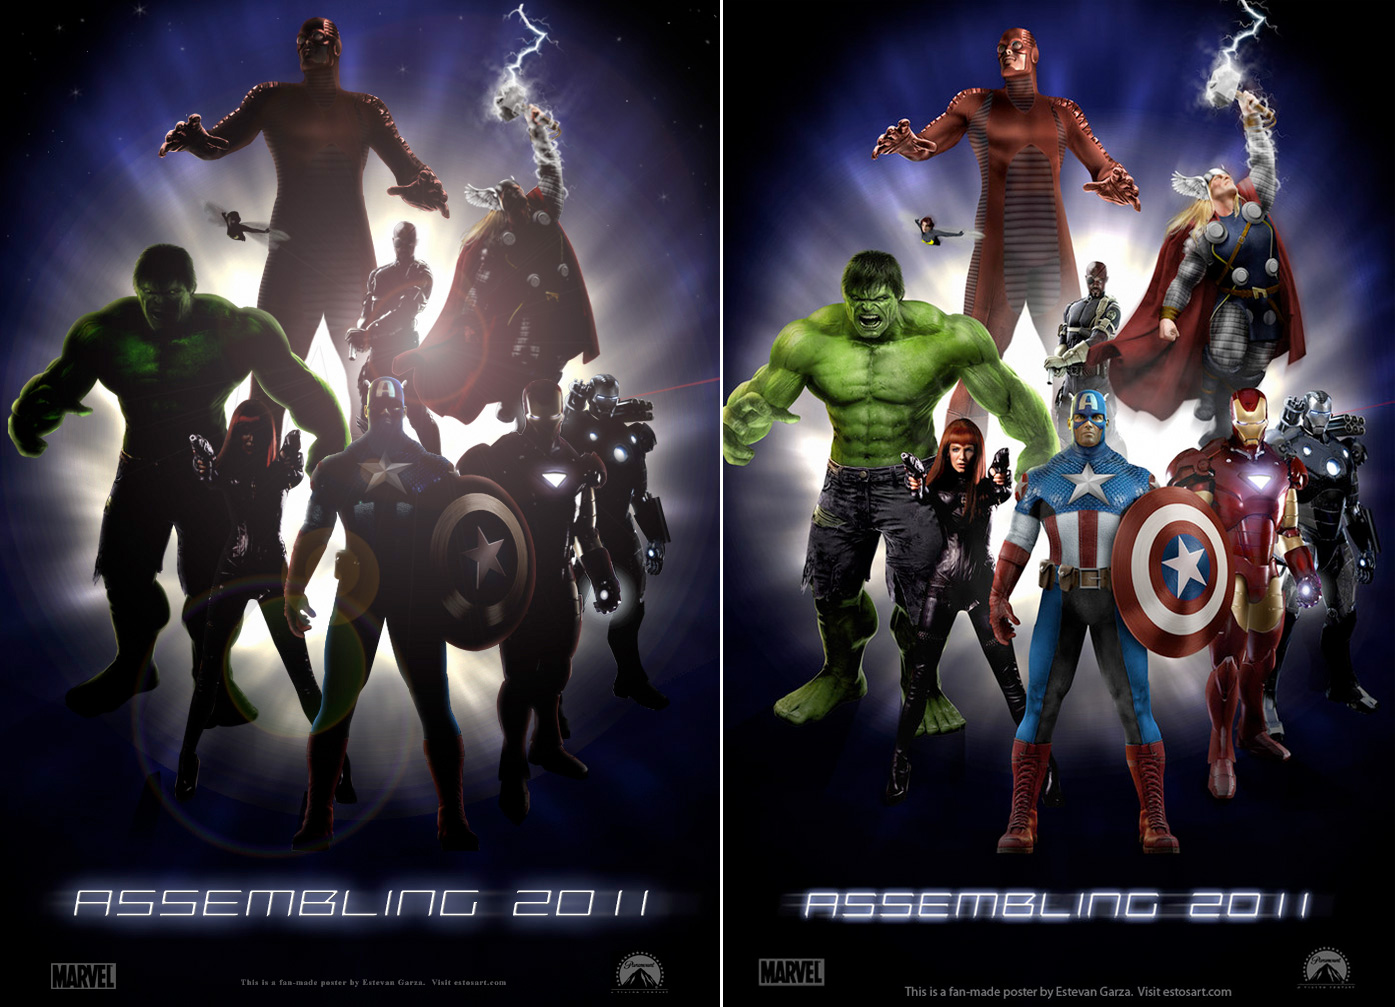 http://host.trivialbeing.org/up/avengers-20090427-fan-made-posters.jpg